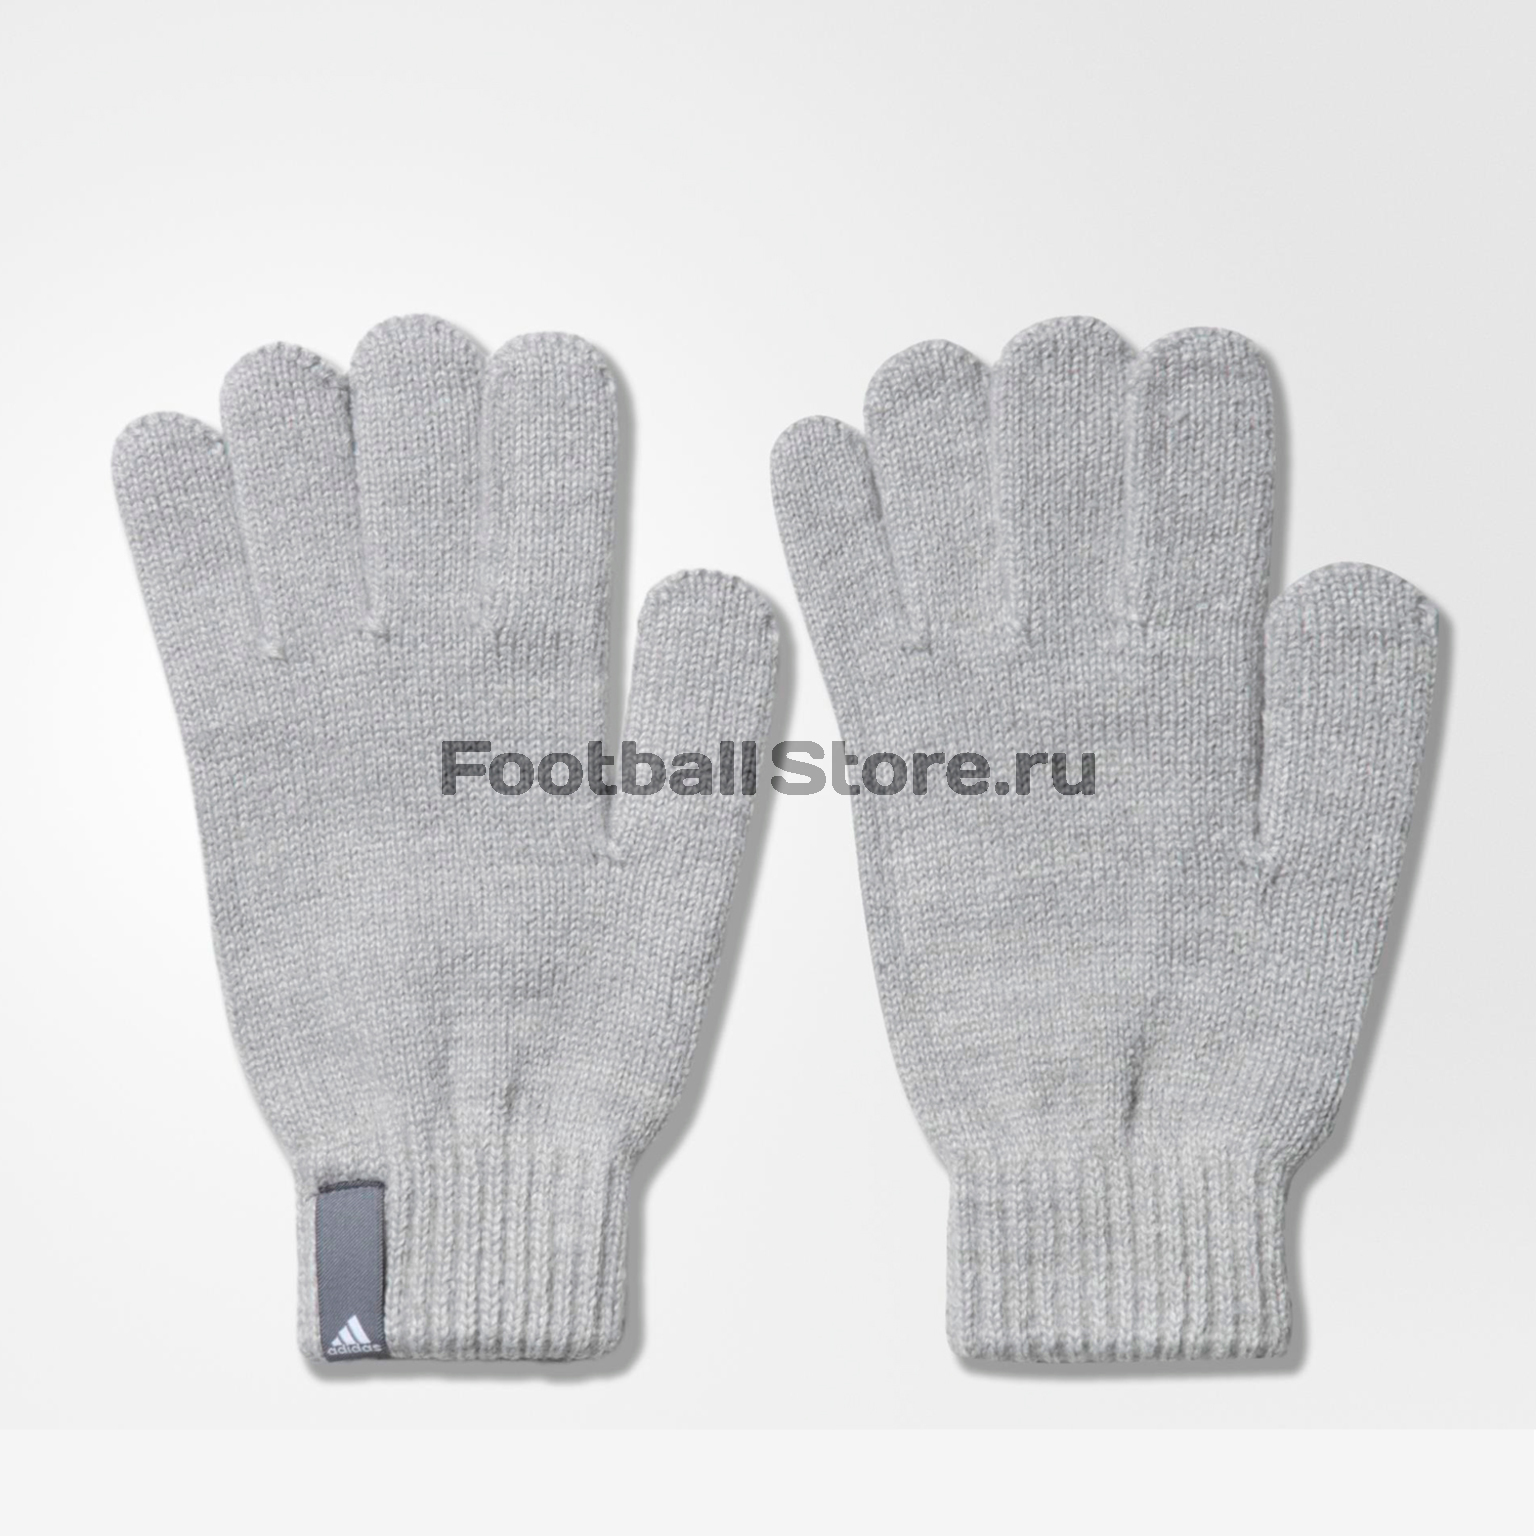 Перчатки Adidas Perf Gloves AB0346 цена